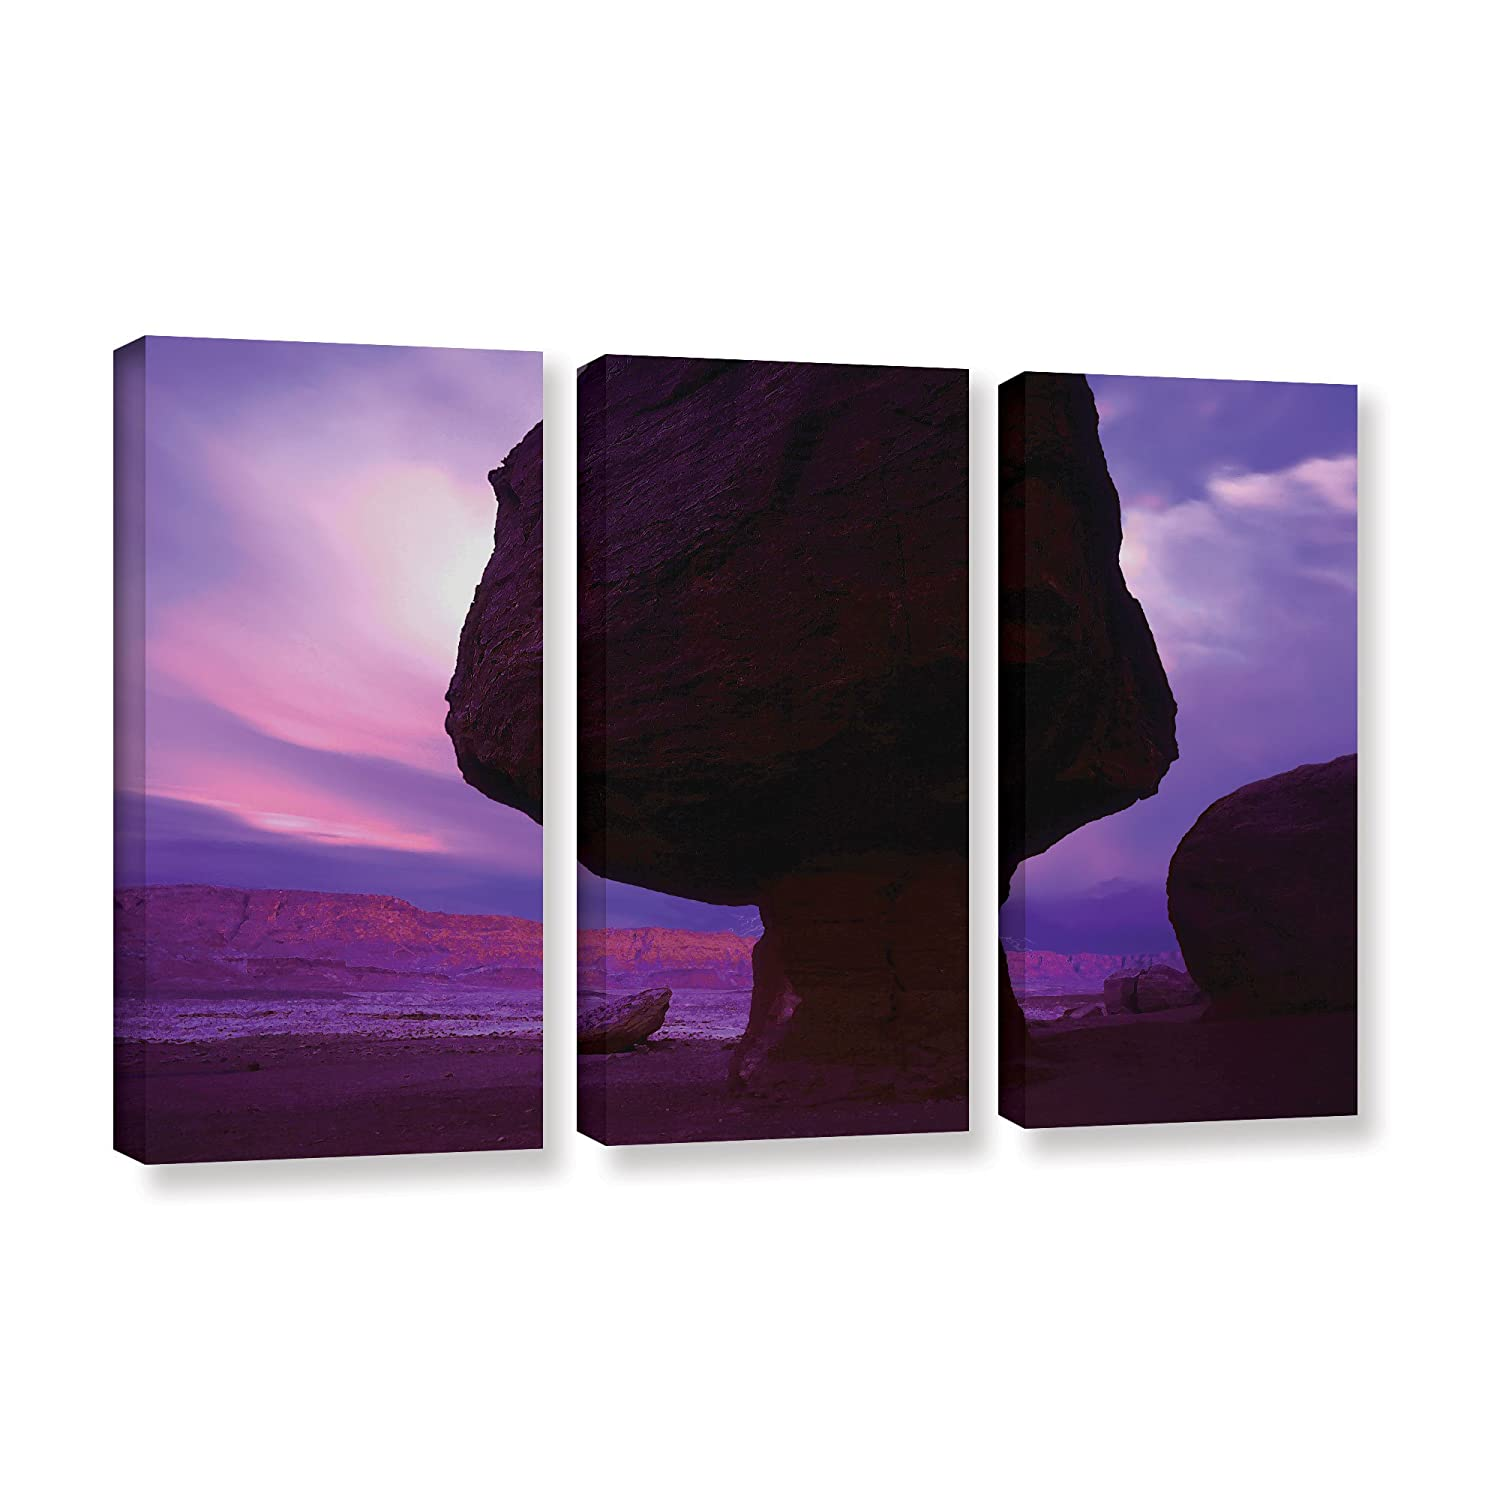 ArtWall Dean Uhlinger 3 Piece Echo Cliffs Storm Light Gallery-Wrapped Canvas Set 36 by 54